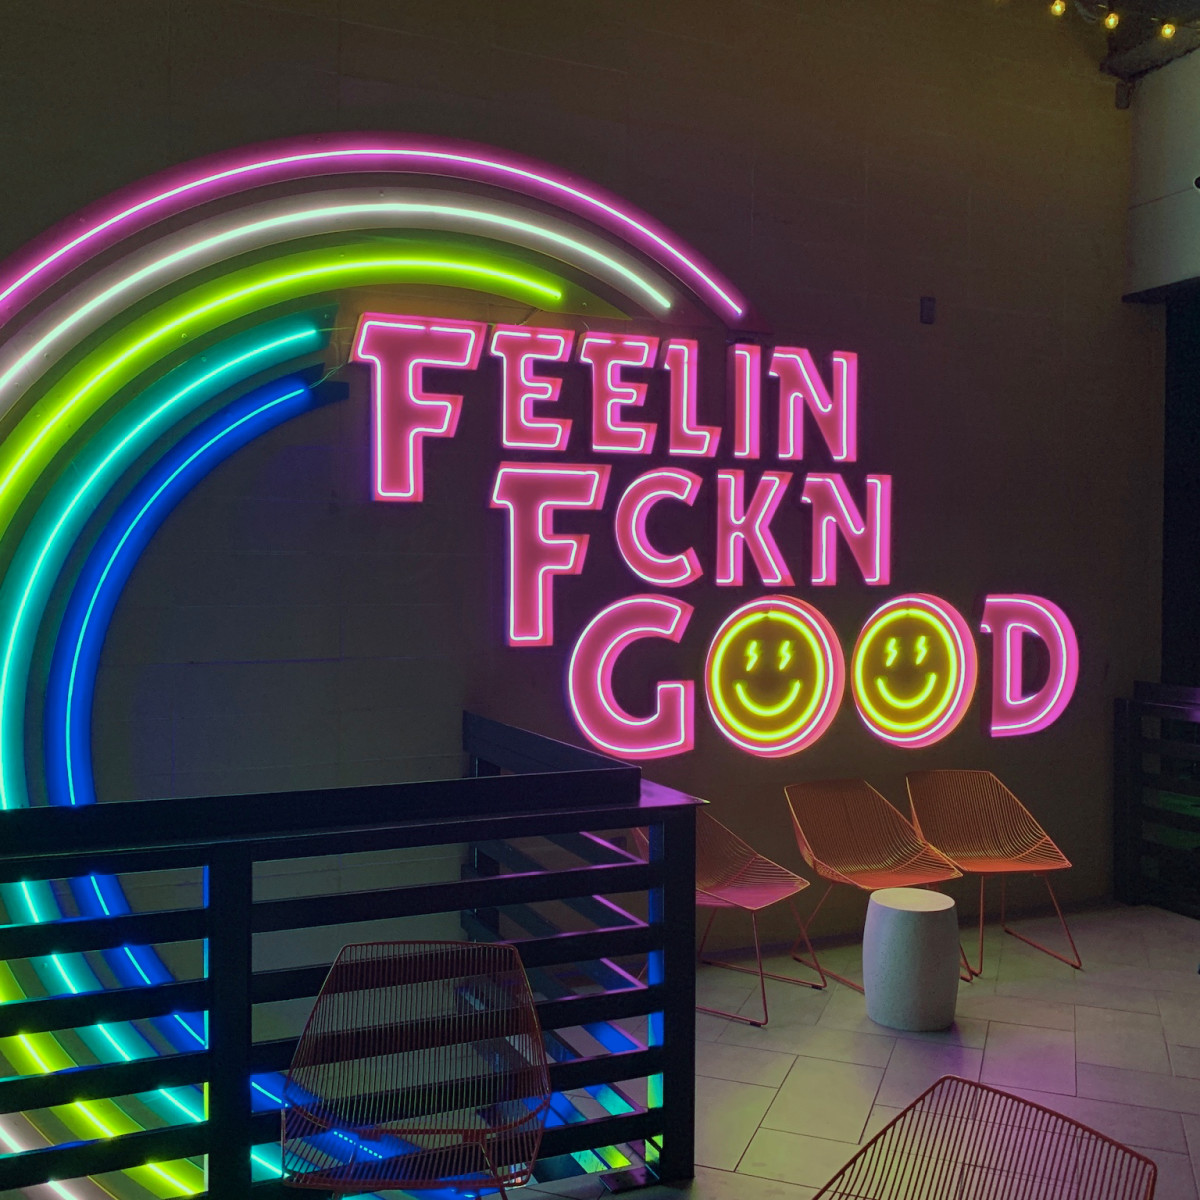 Electric FeelGood neon sign